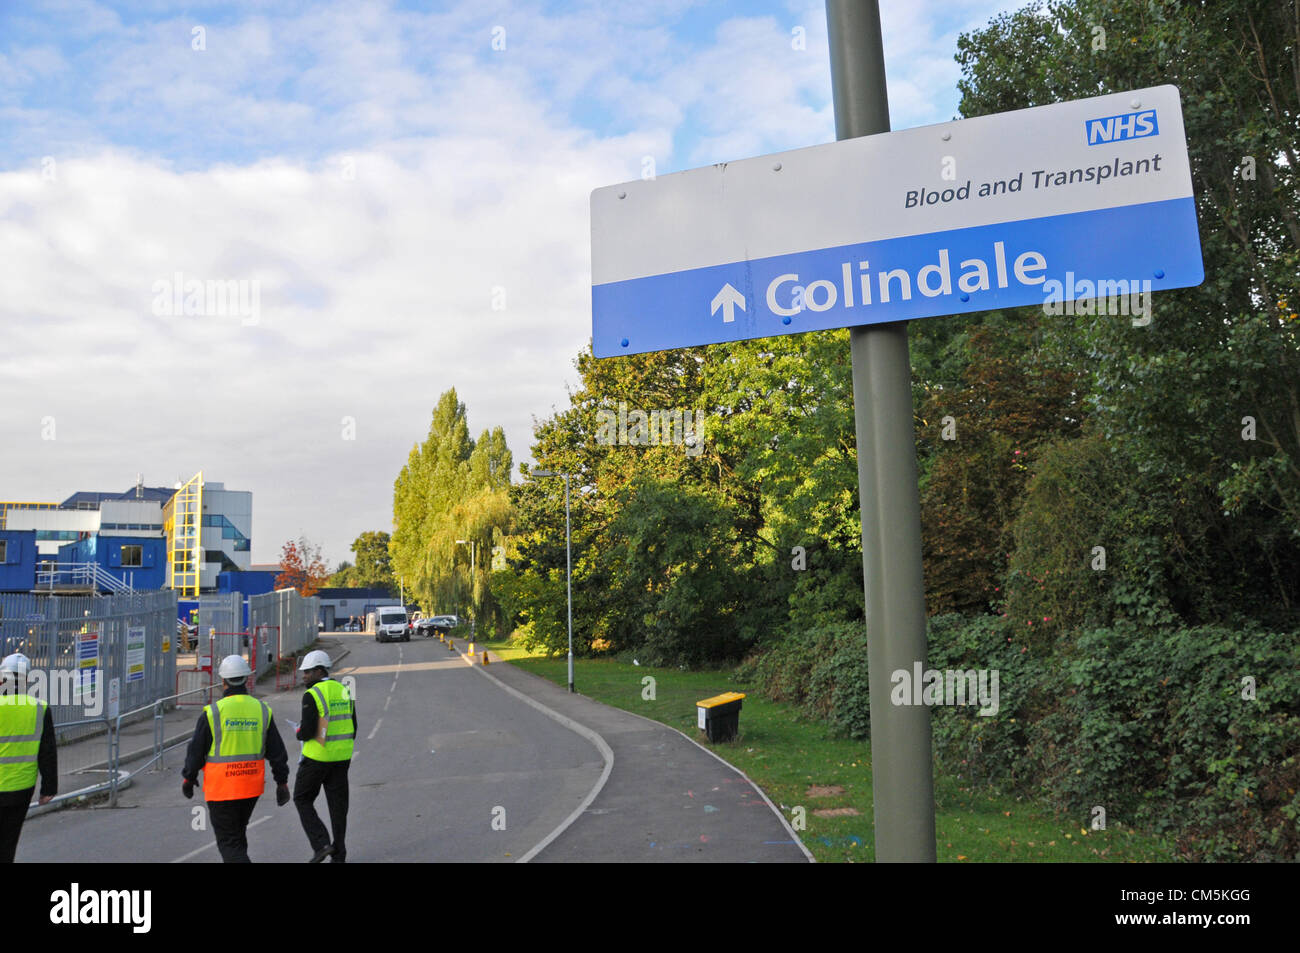 Colindale, London, UK.  10th October 2012. The main road that leads to the NHS centre. The Blood Testing centre - Stock Image